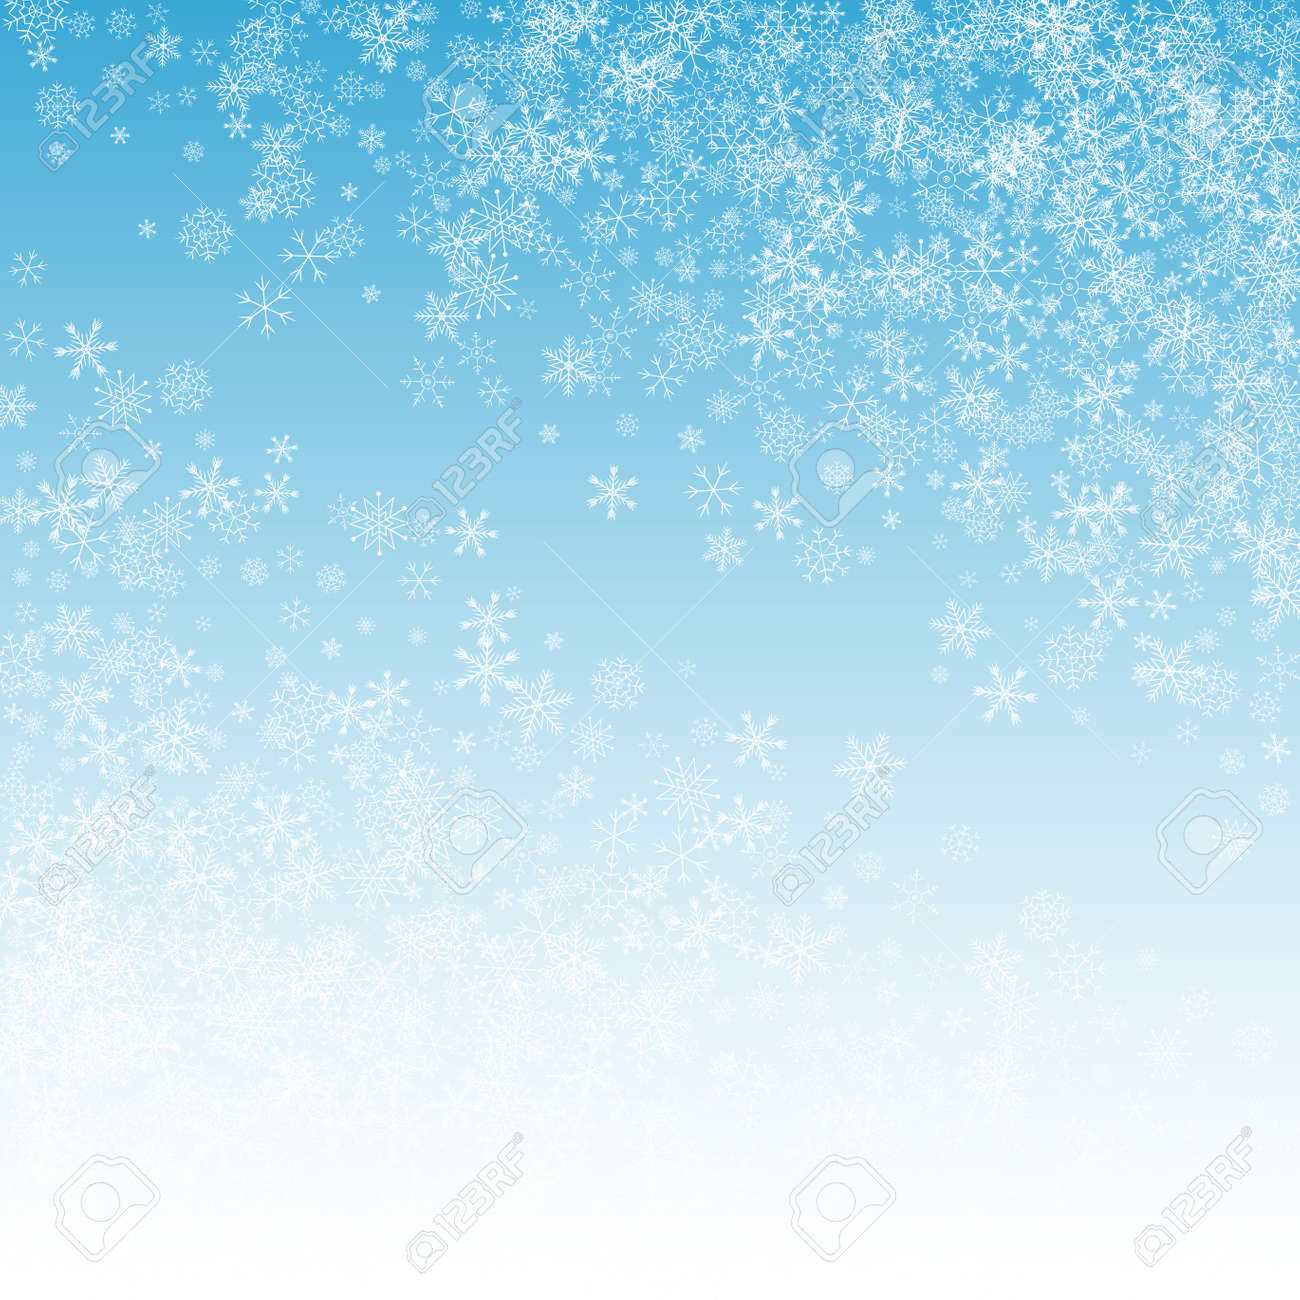 White Snow Vector Blue Background. Light Snowfall Holiday. Silver Falling Transparent. magic Snowflake Backdrop. - 157450291